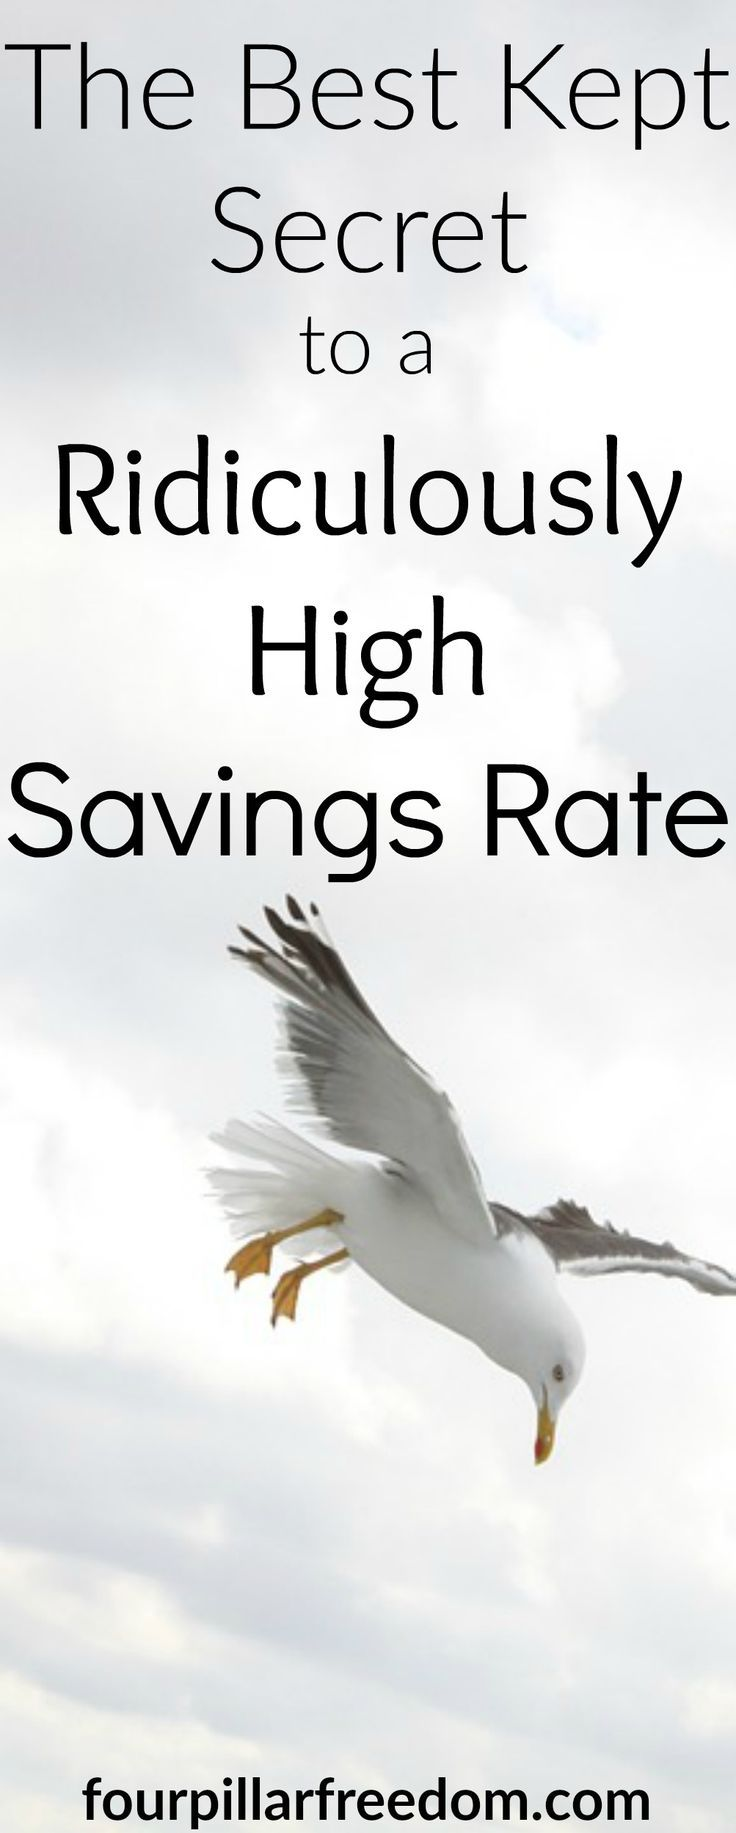 This one shift in mindset will allow you to save more of your money and dramatically increase your savings rate!